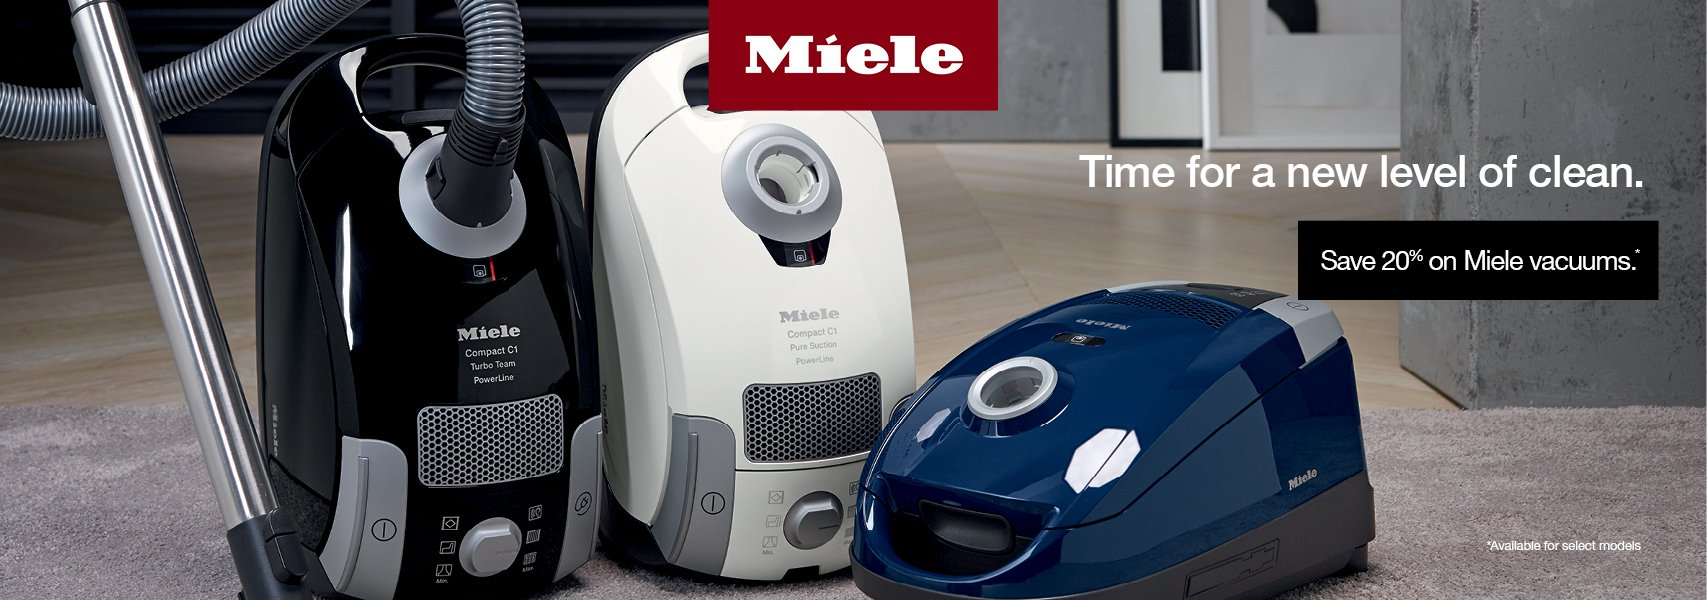 20% off Miele vacuums at Electric Hospital.